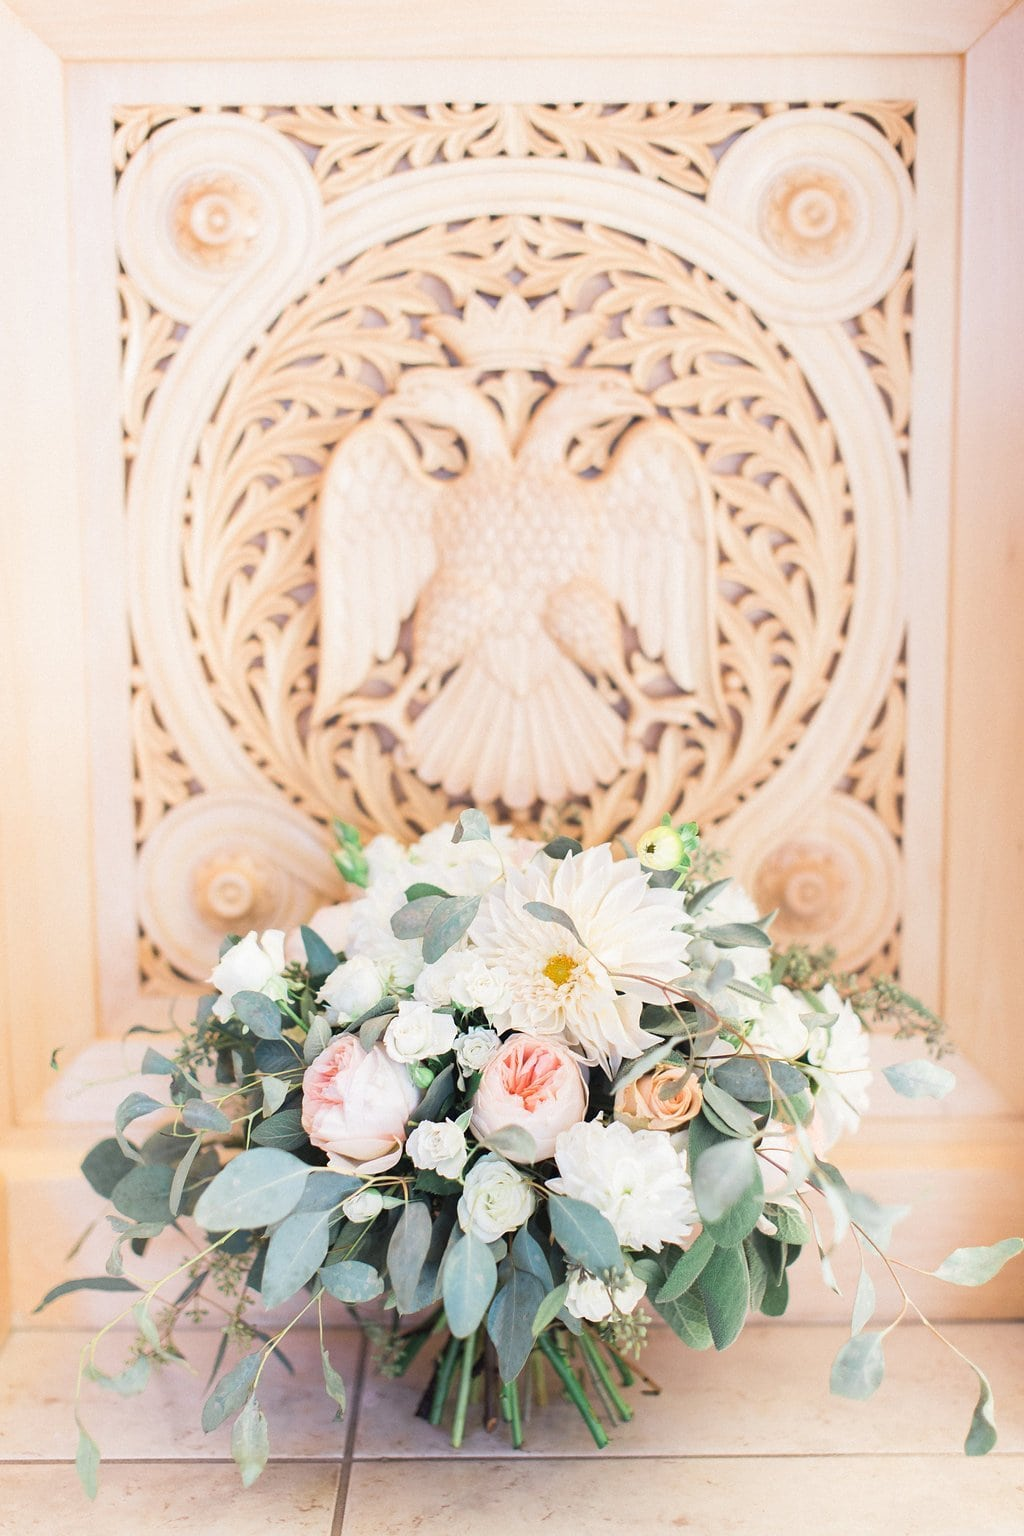 Bride's blush pink and white bouquet photographed inside the church